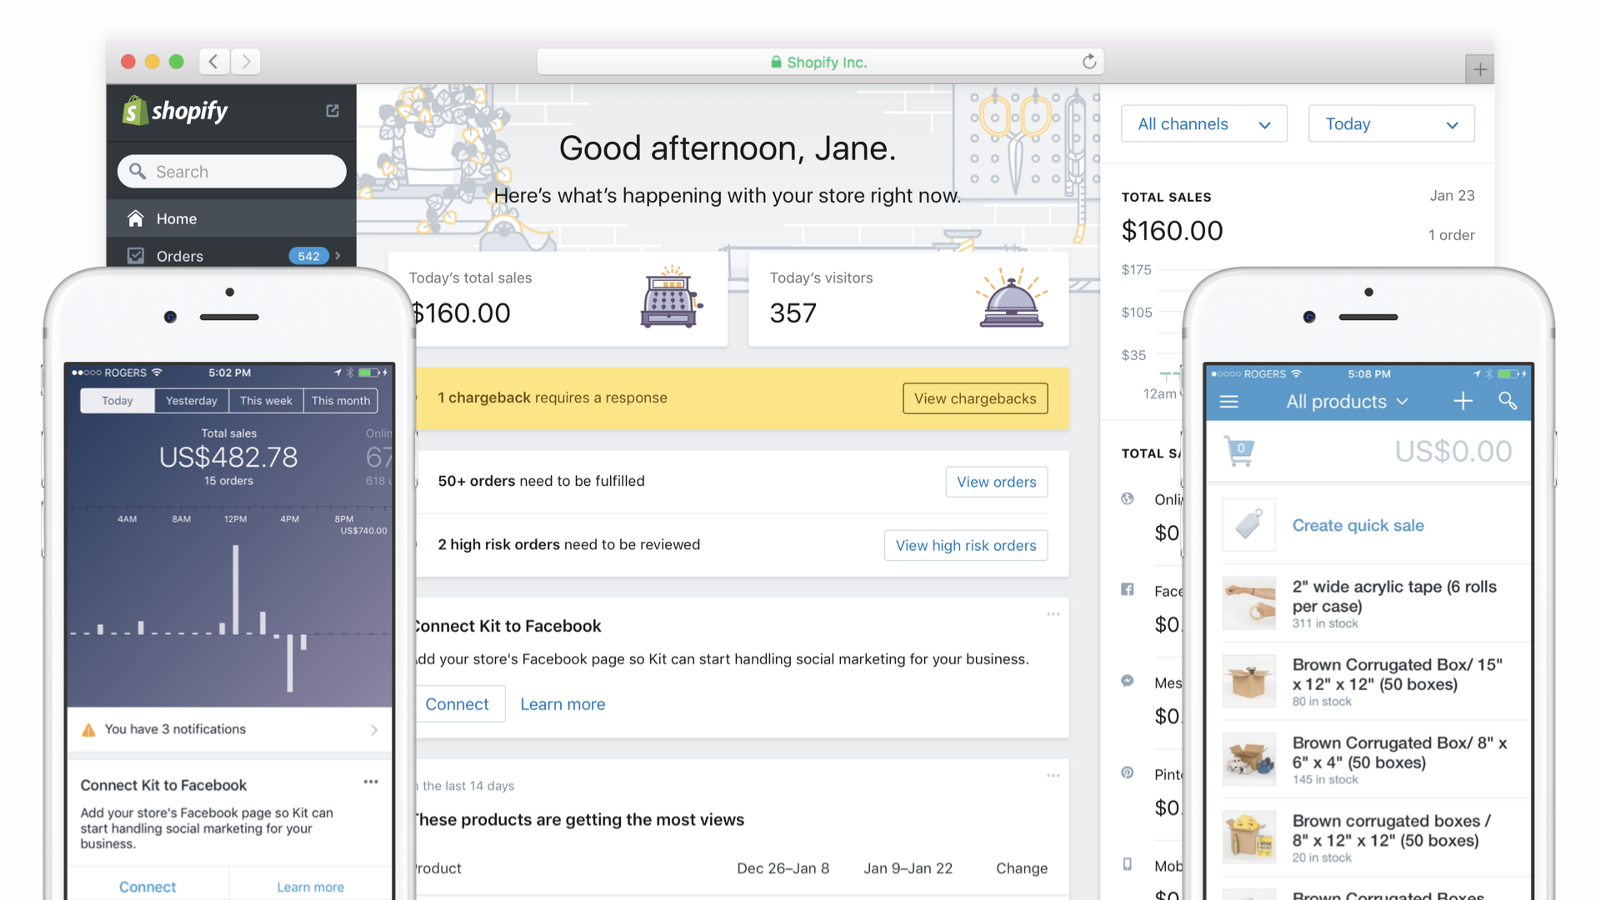 A screenshot of Shopify's mobile, web and point of sale interfaces before implementation of the Polaris design system.